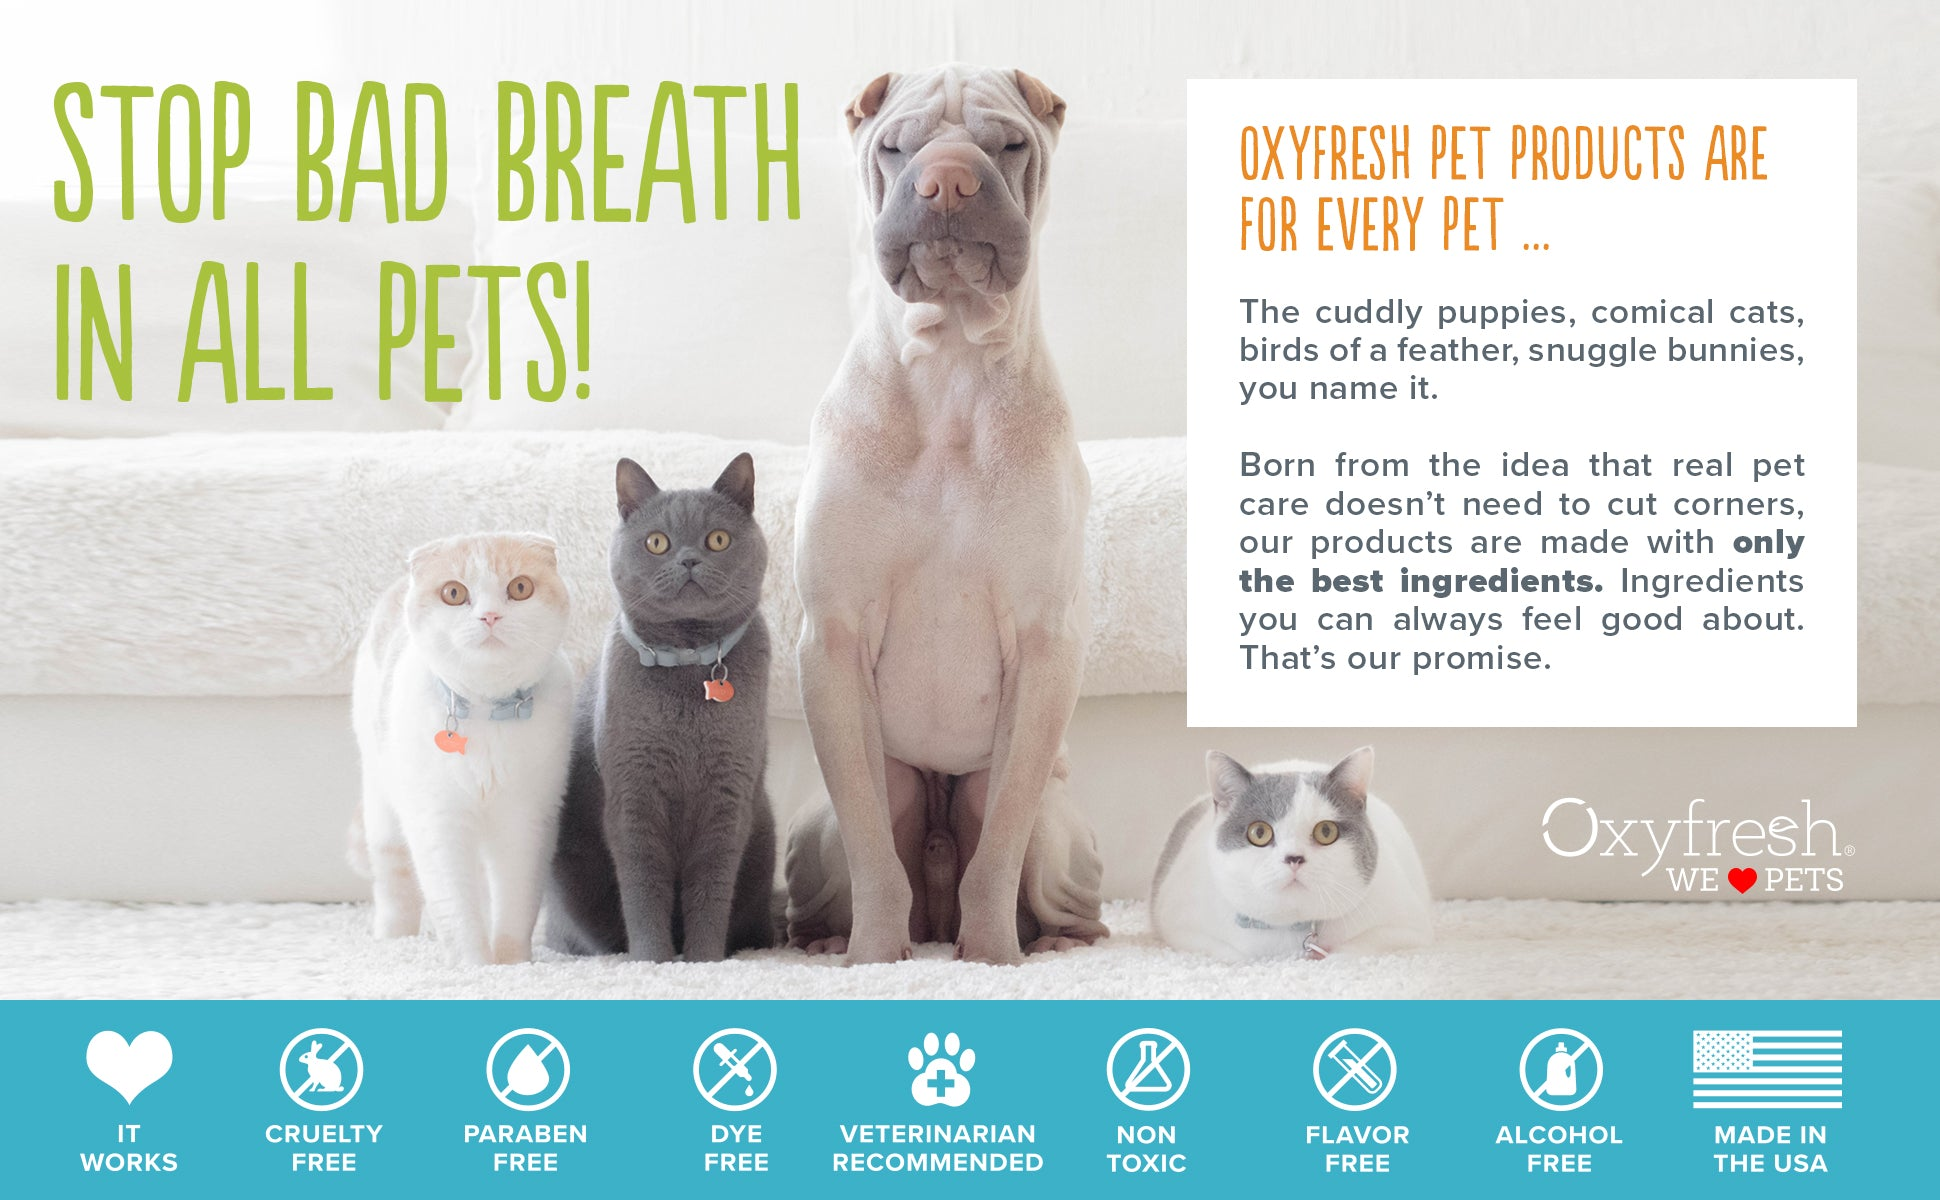 Oxyfresh - Stop bad breath in all pets